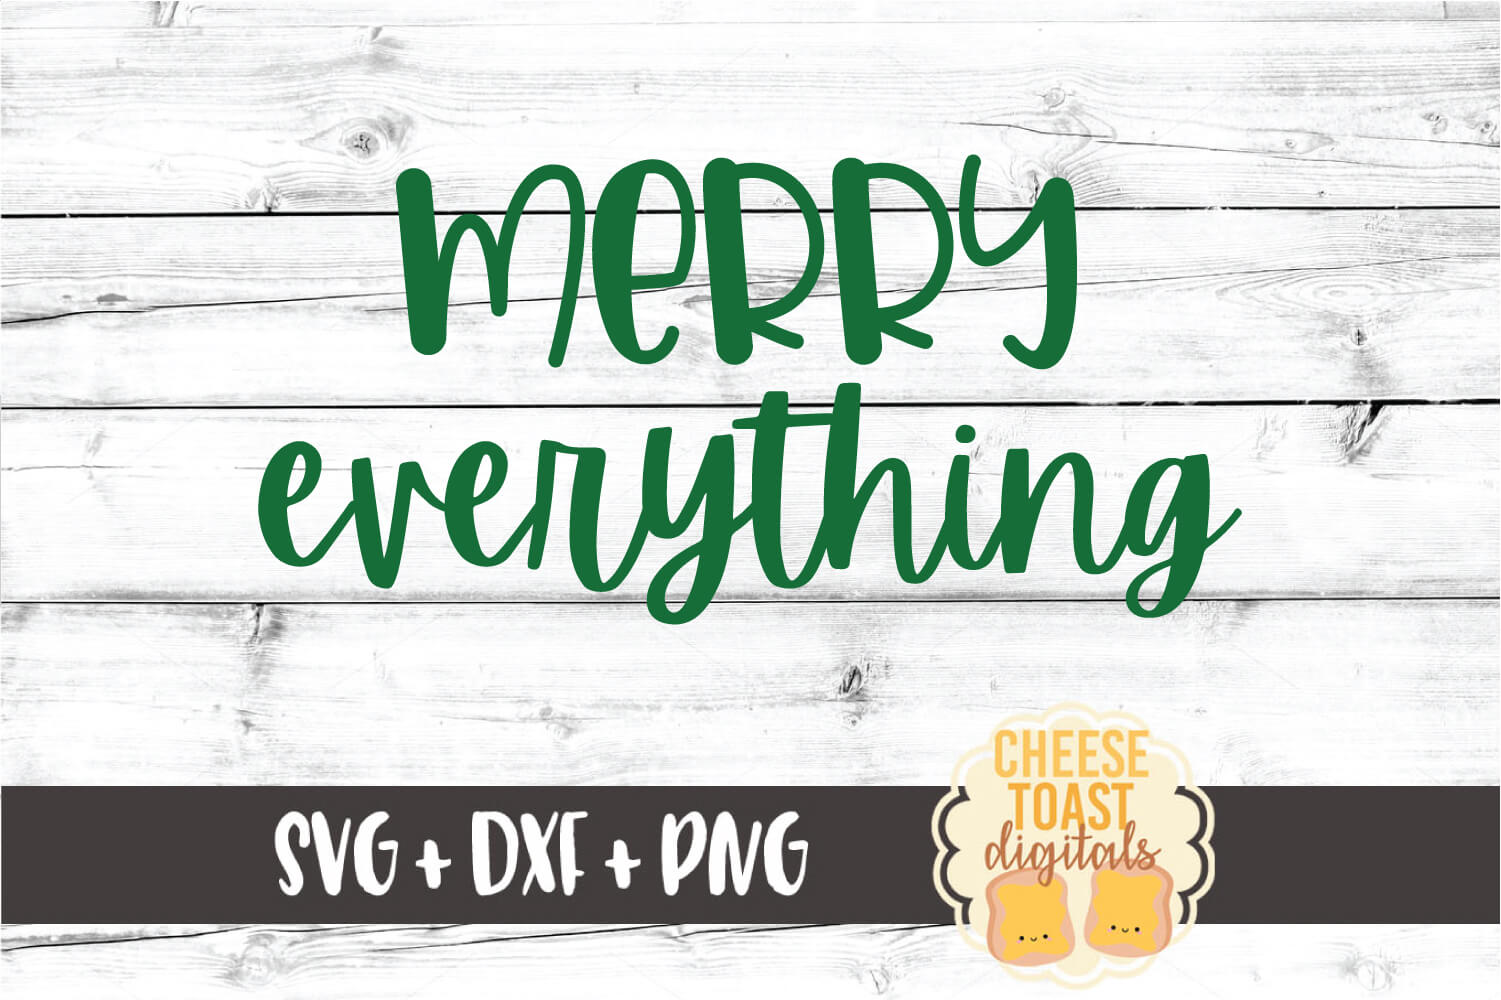 Merry Everything - Christmas SVG PNG DXF Cut Files example image 2